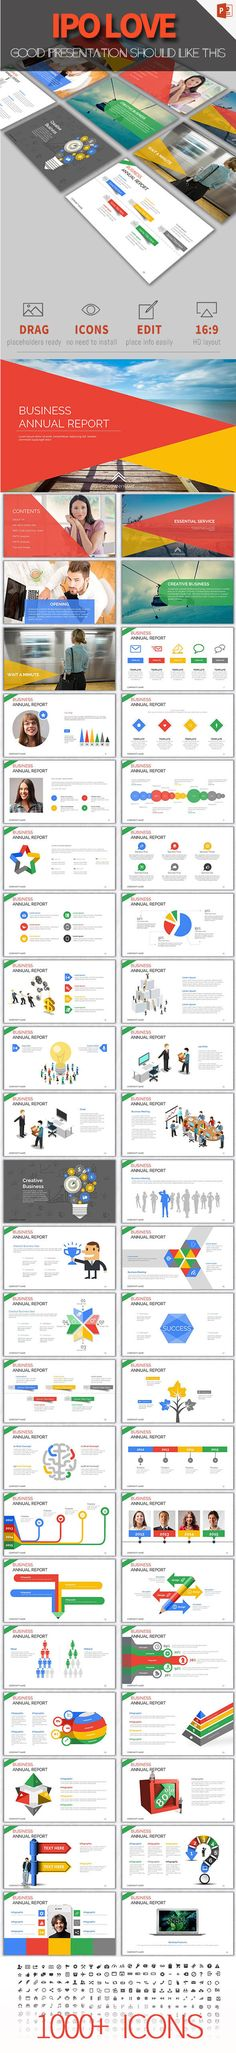 Mali - Business Powerpoint Template Design, Business and - business report templates